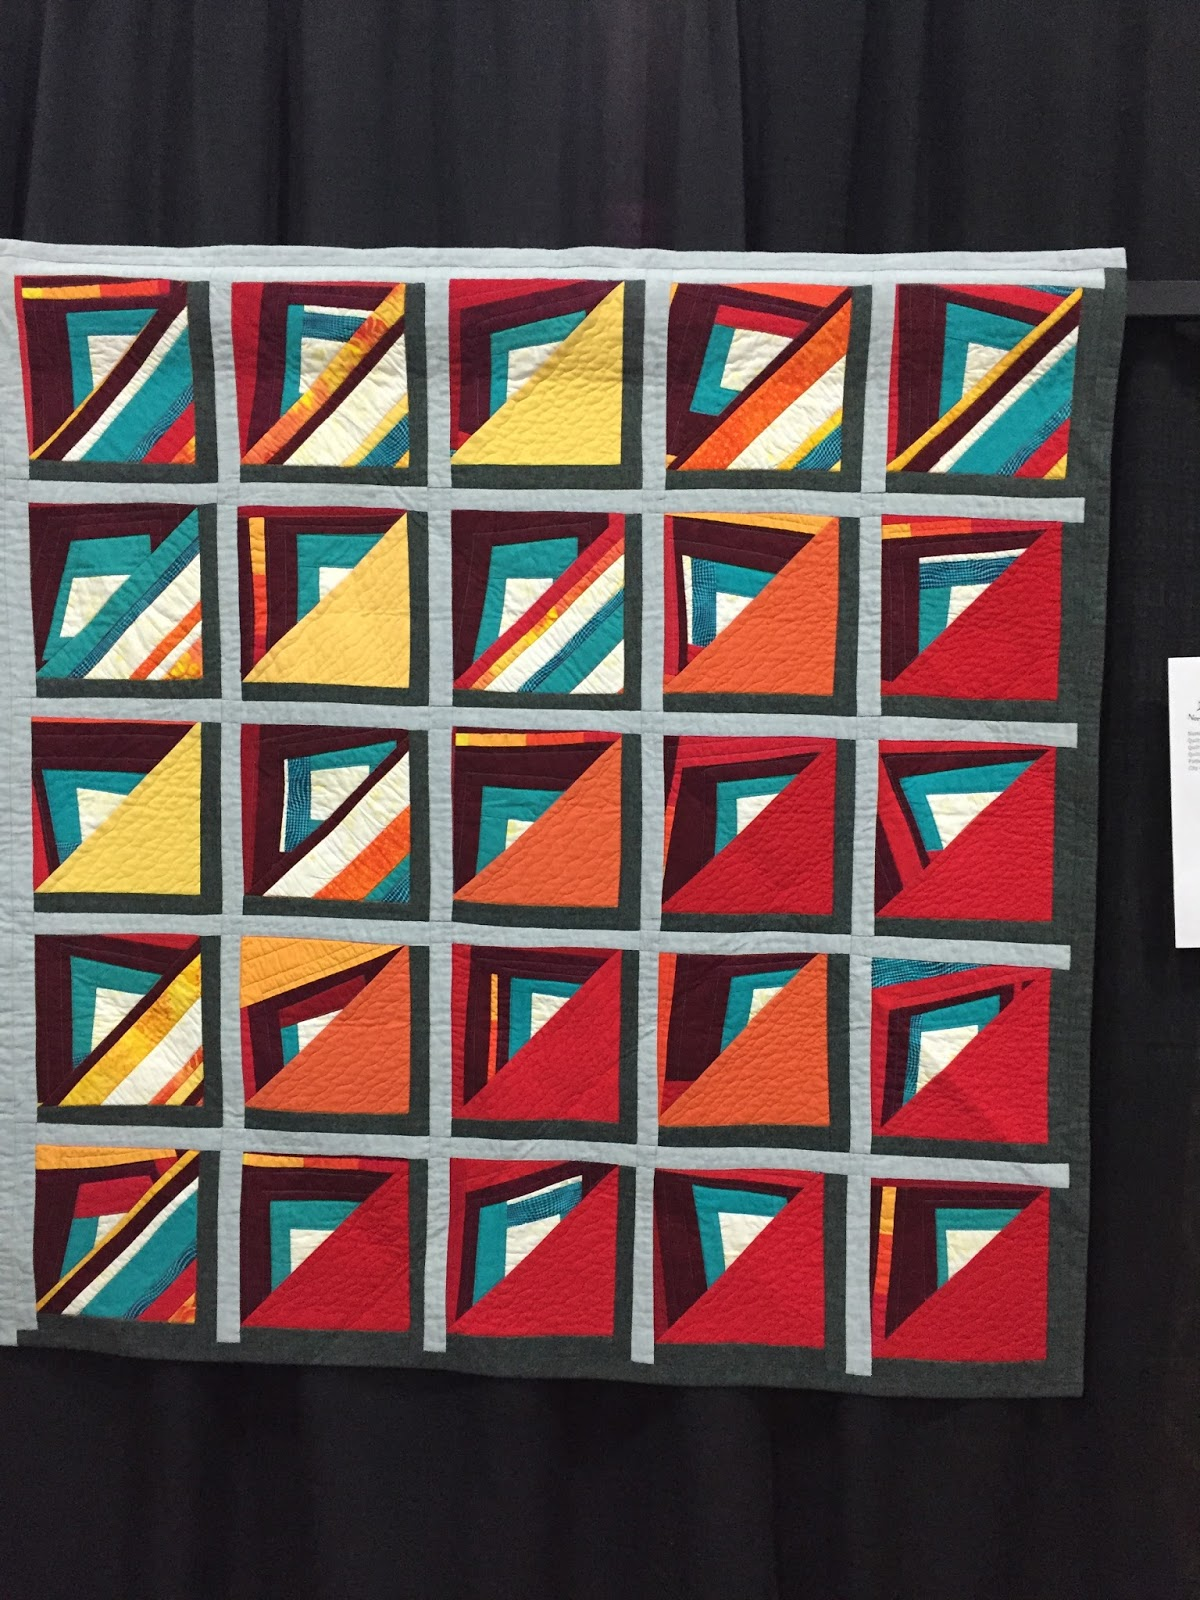 She Quilts It: Winning Quilts by Friends and others at Northwest ... : puyallup quilt show - Adamdwight.com